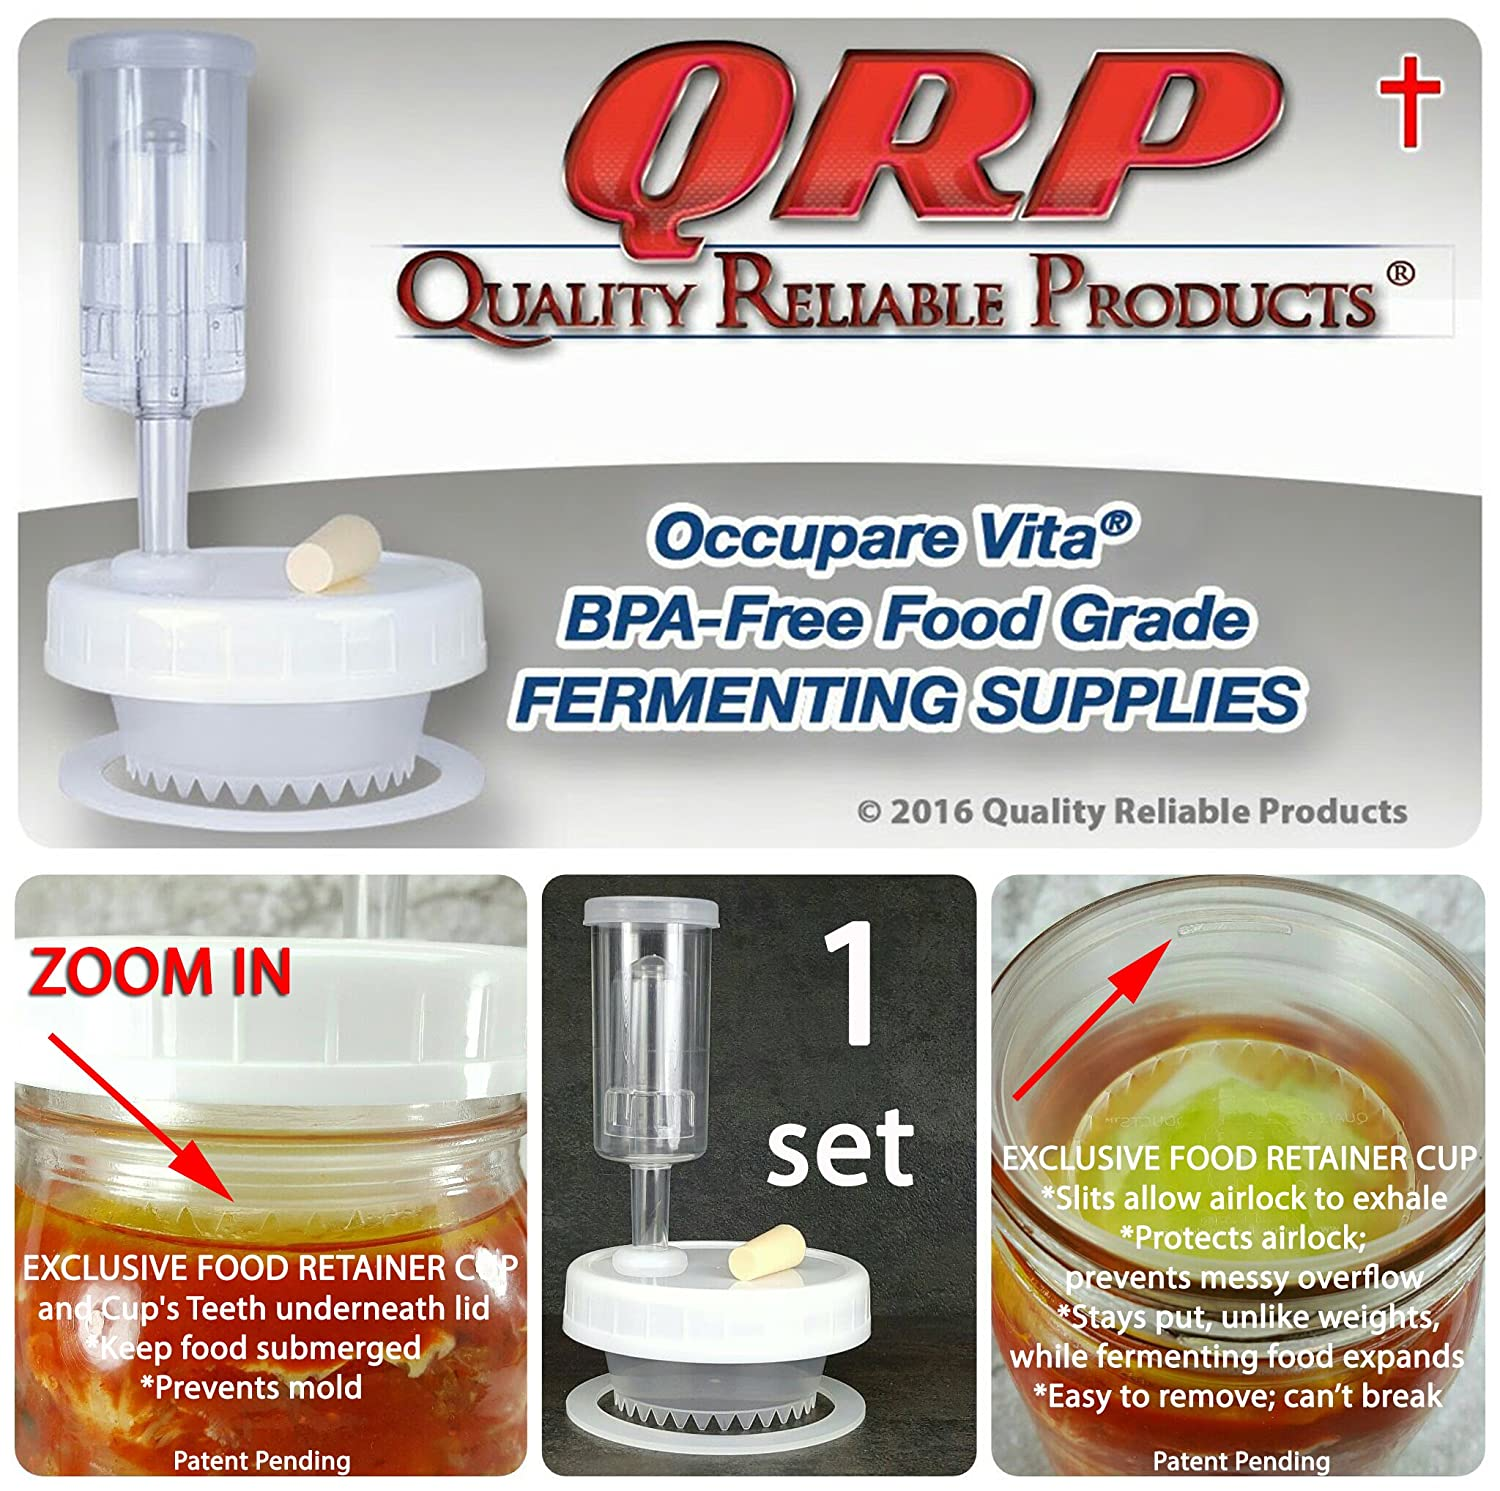 1 QRP No Messy Overflow No Weight Needed Mason Jar Fermentation Kit with Exclusive Food Retainer Cup keeps food submerged in brine (1 REGULAR MOUTH) Quality Reliable Products